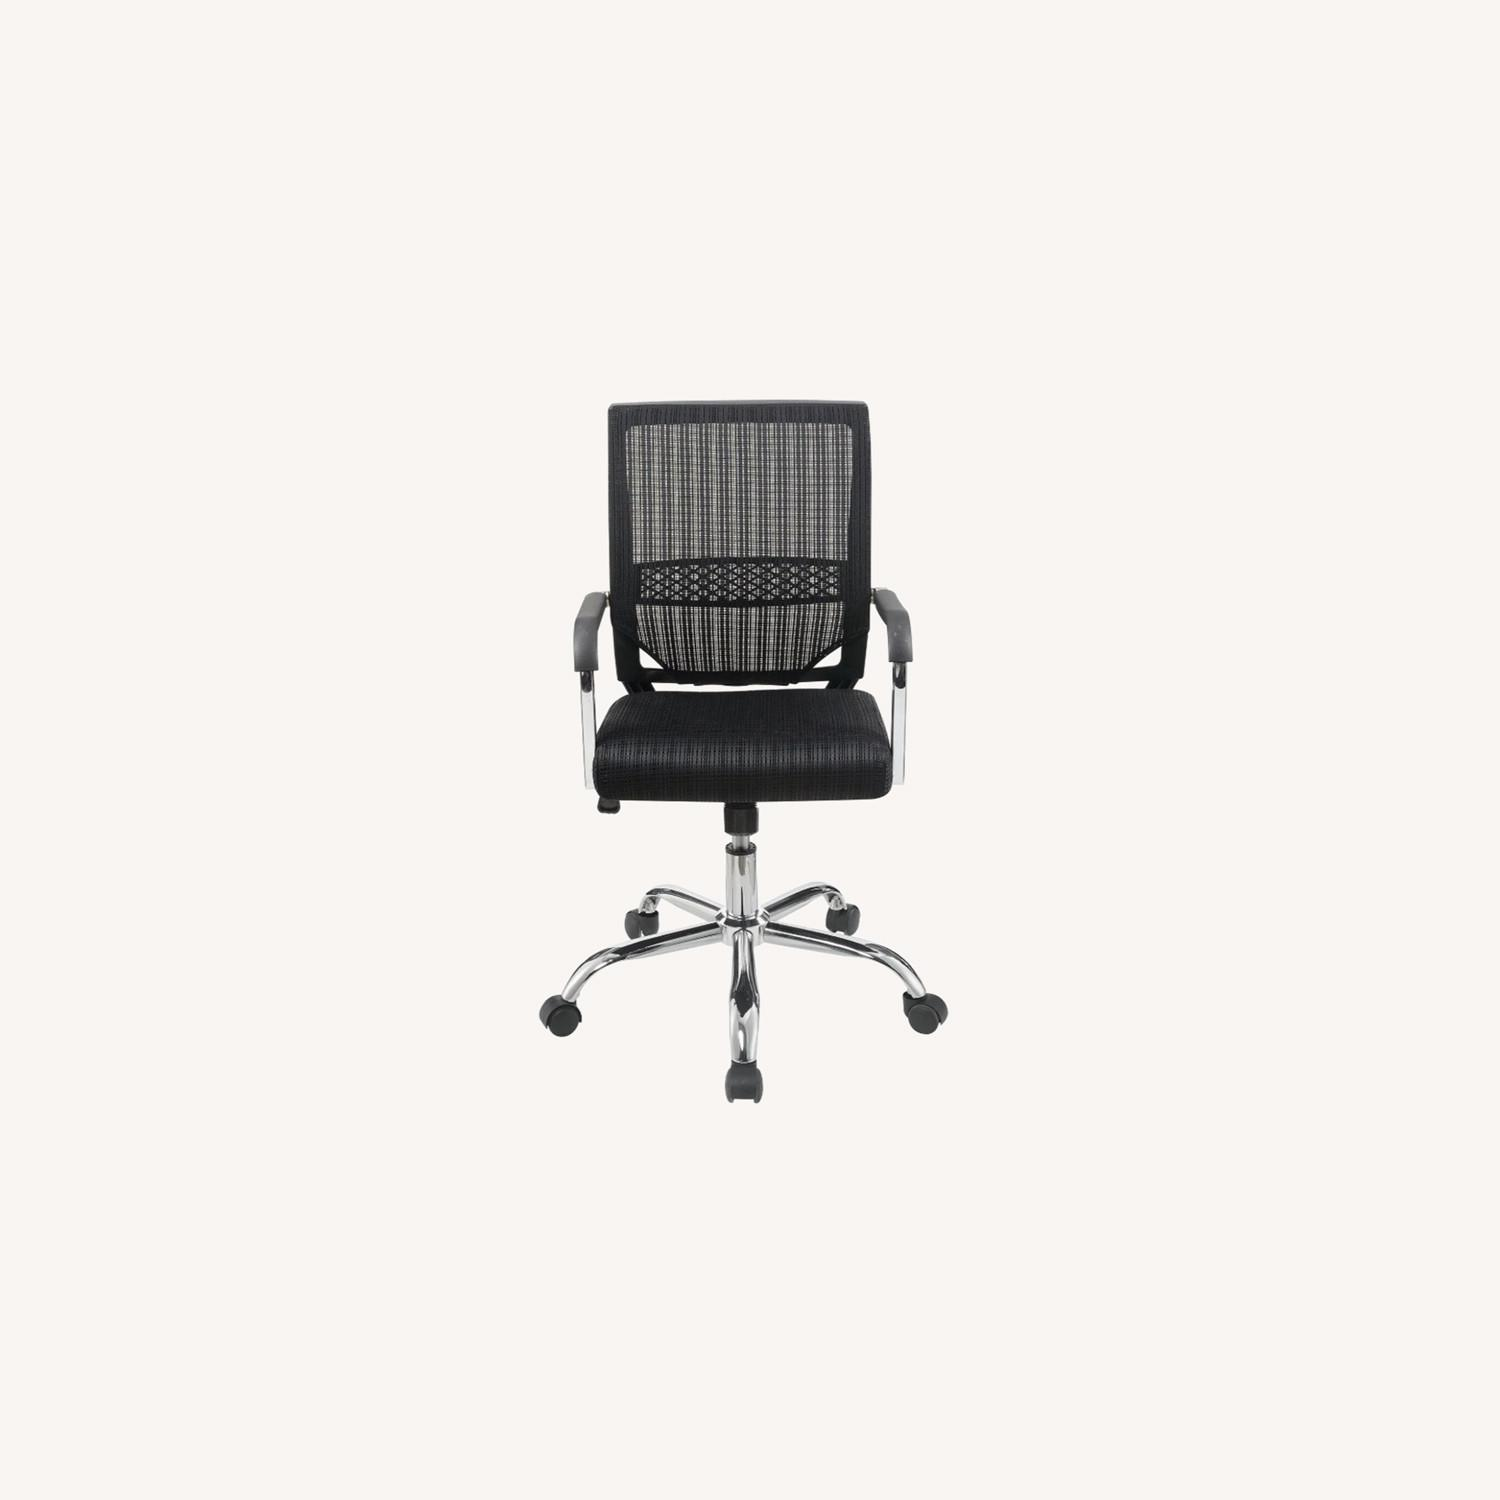 Office Chair In Black Fabric Finish W/ Mesh Back - image-8